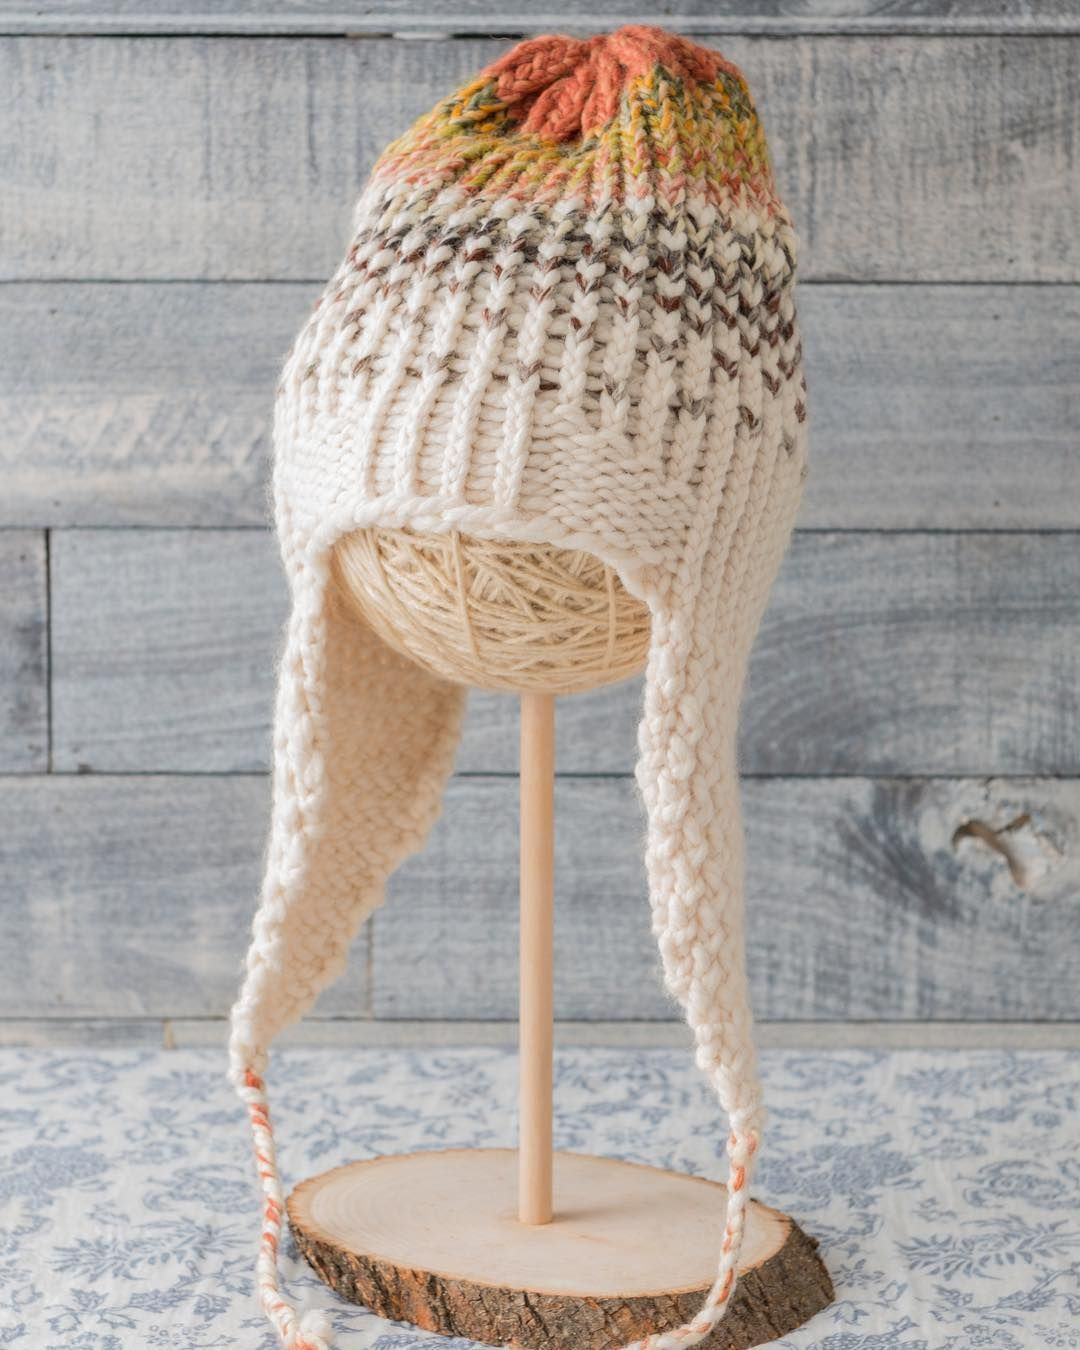 Easy and Amazing Loom Knitting Patterns for 2019 - Page 35 of 35 - Crochet Blog!